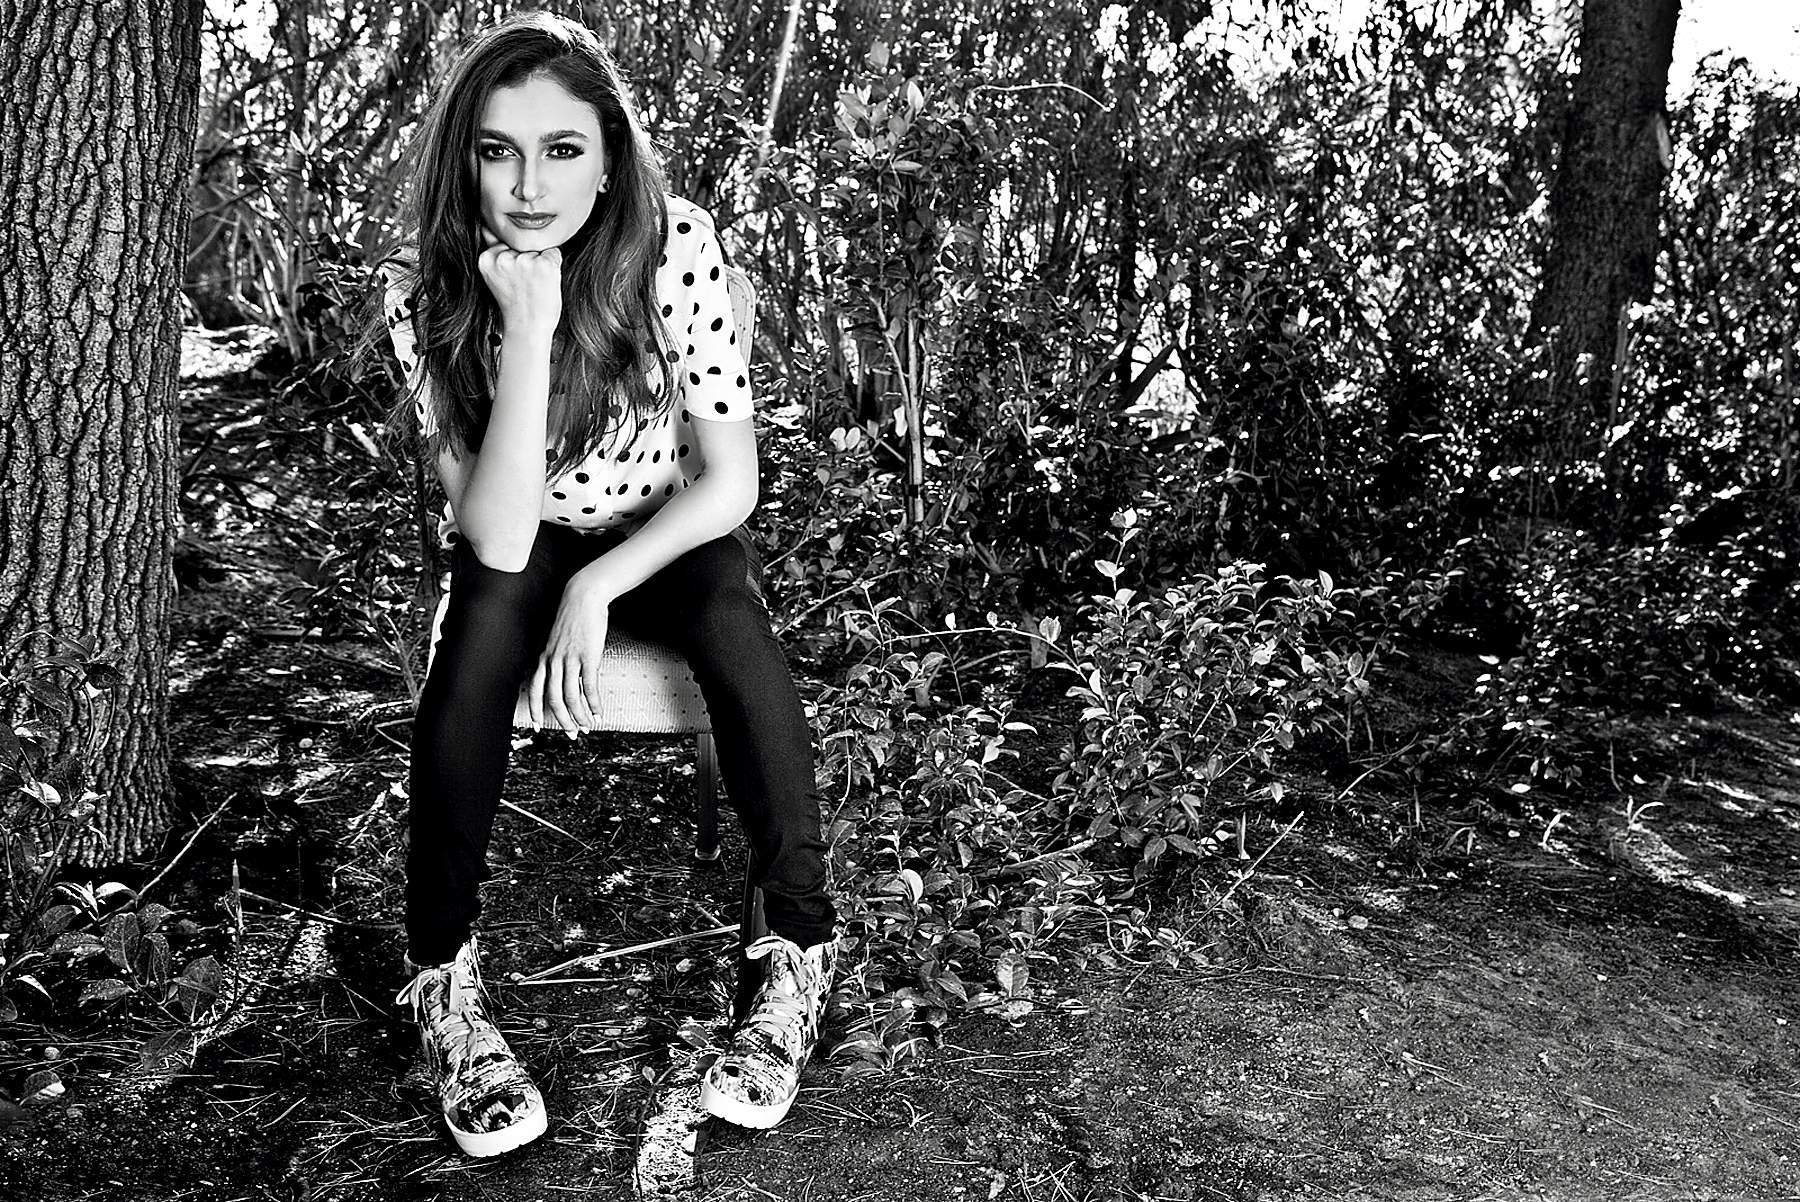 daya singer widescreen desktop wallpaper 1269